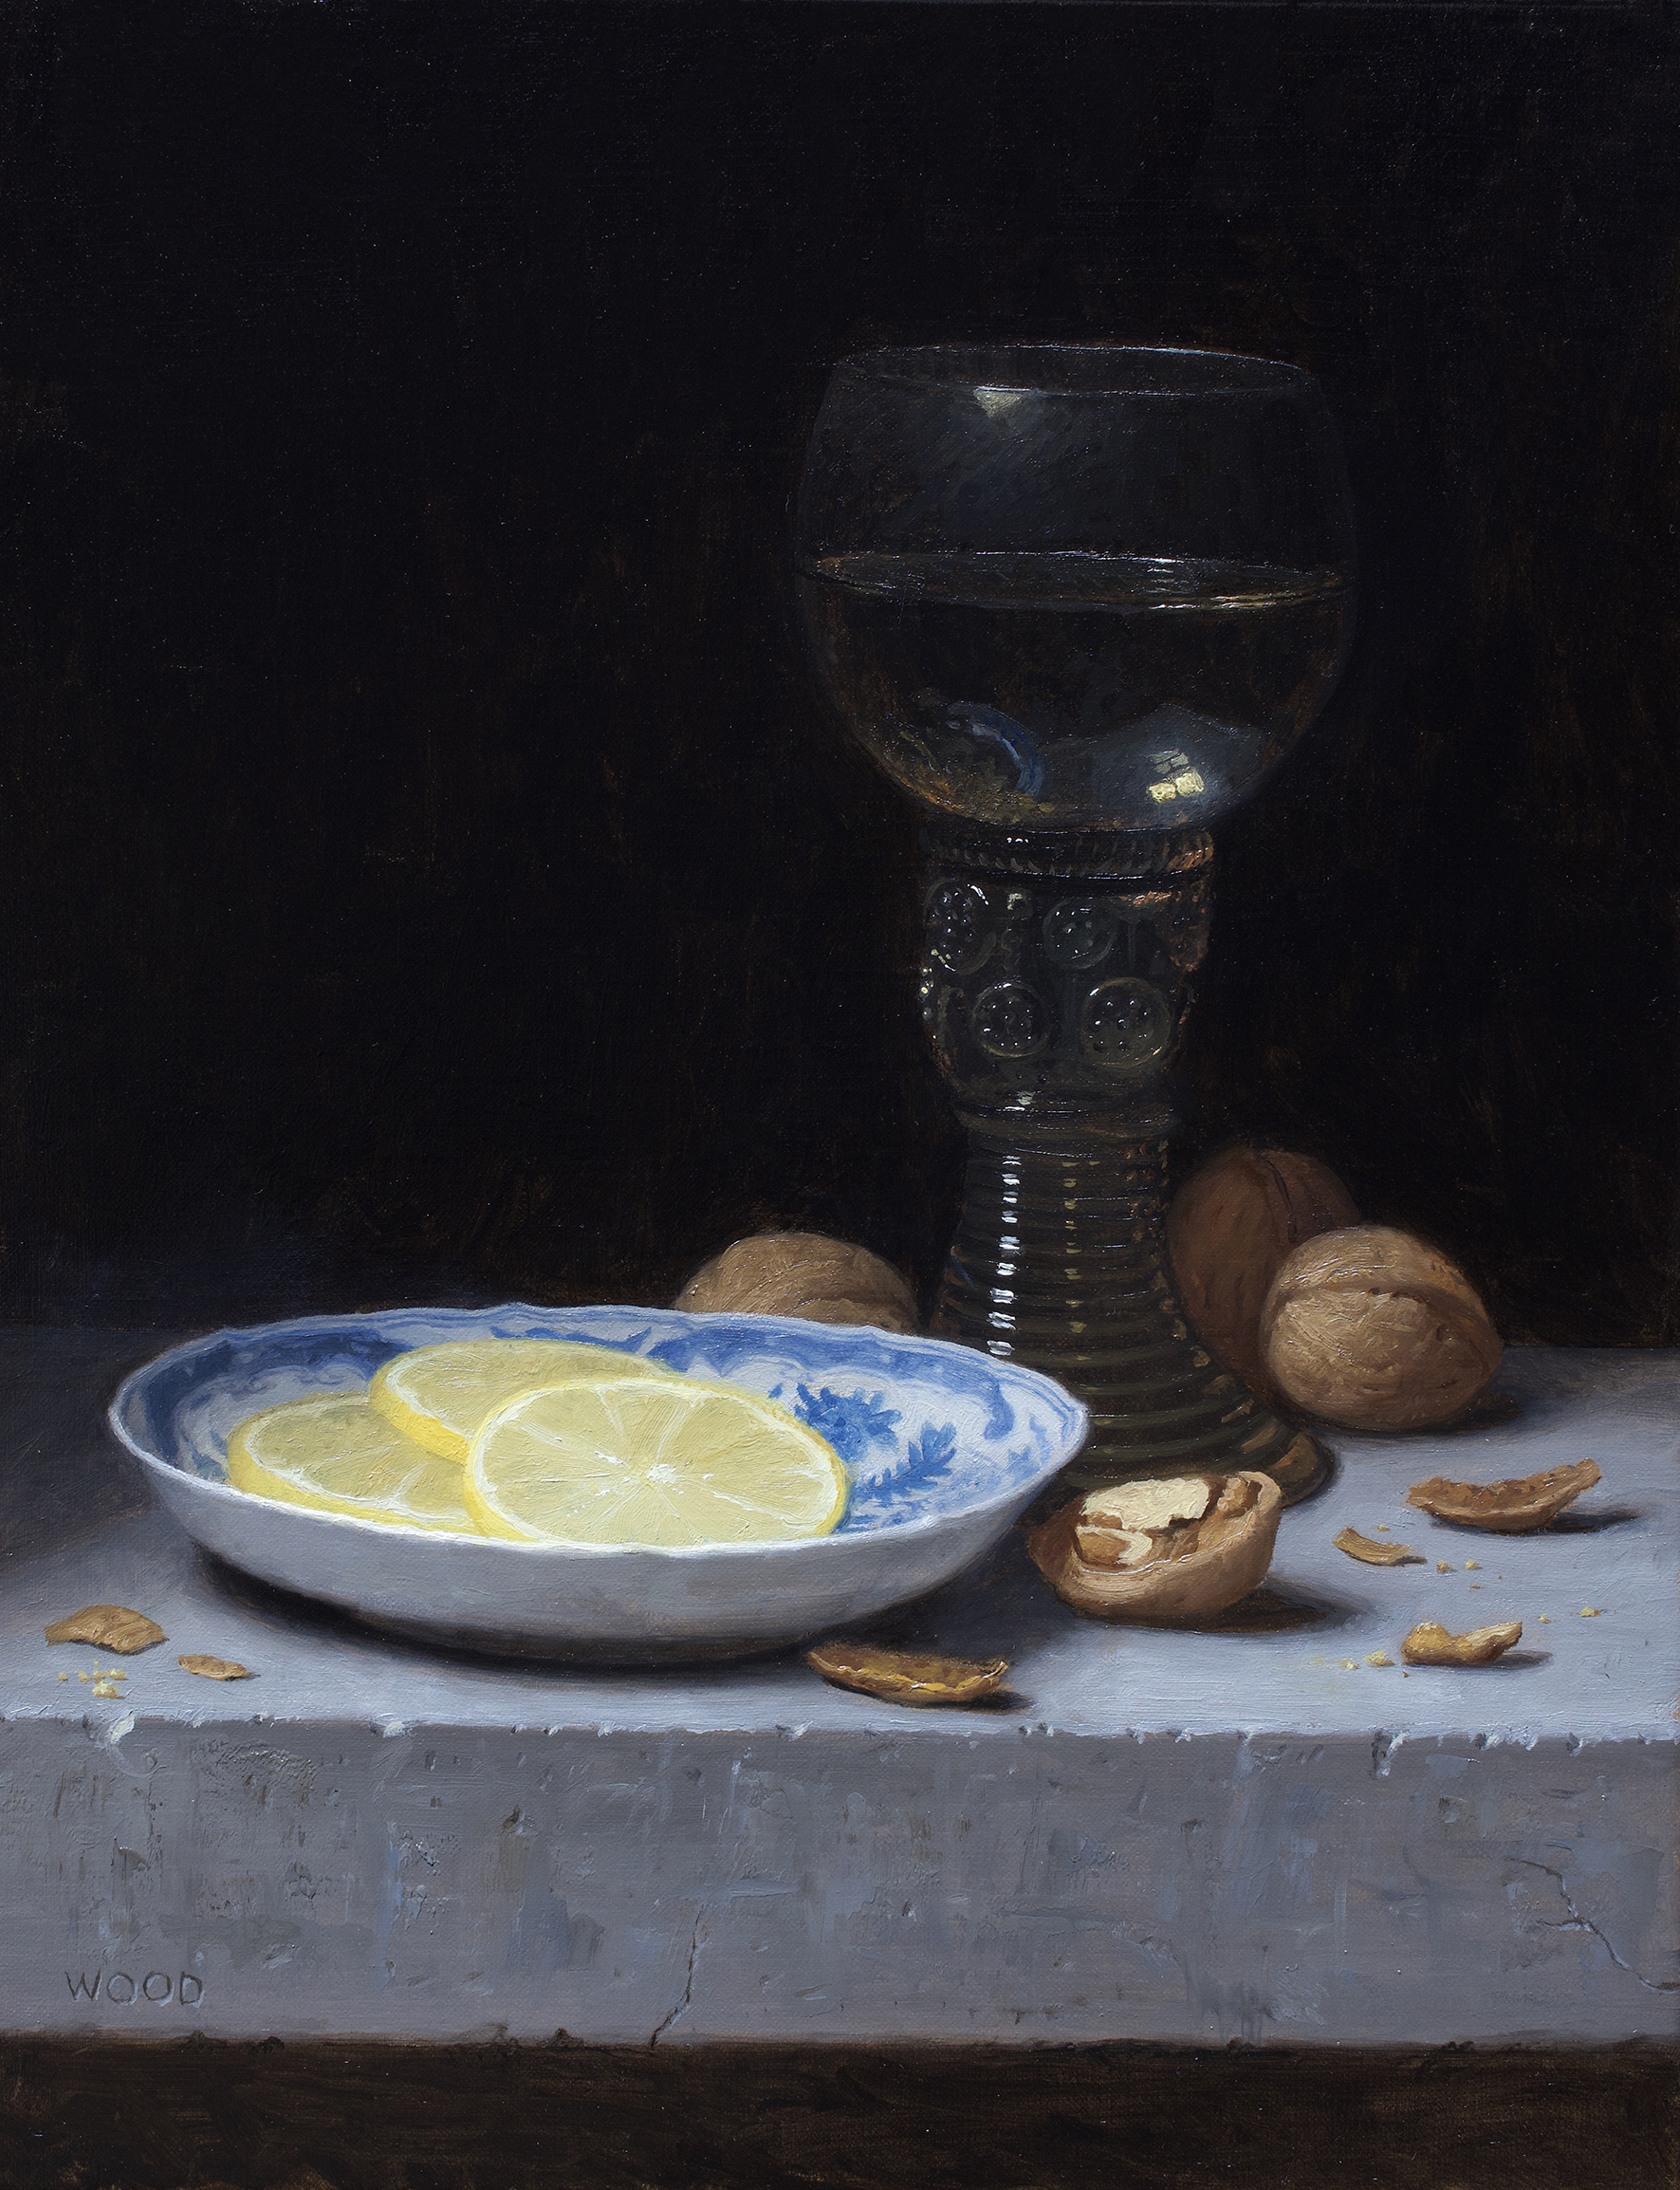 Still Life with Lemon Slices